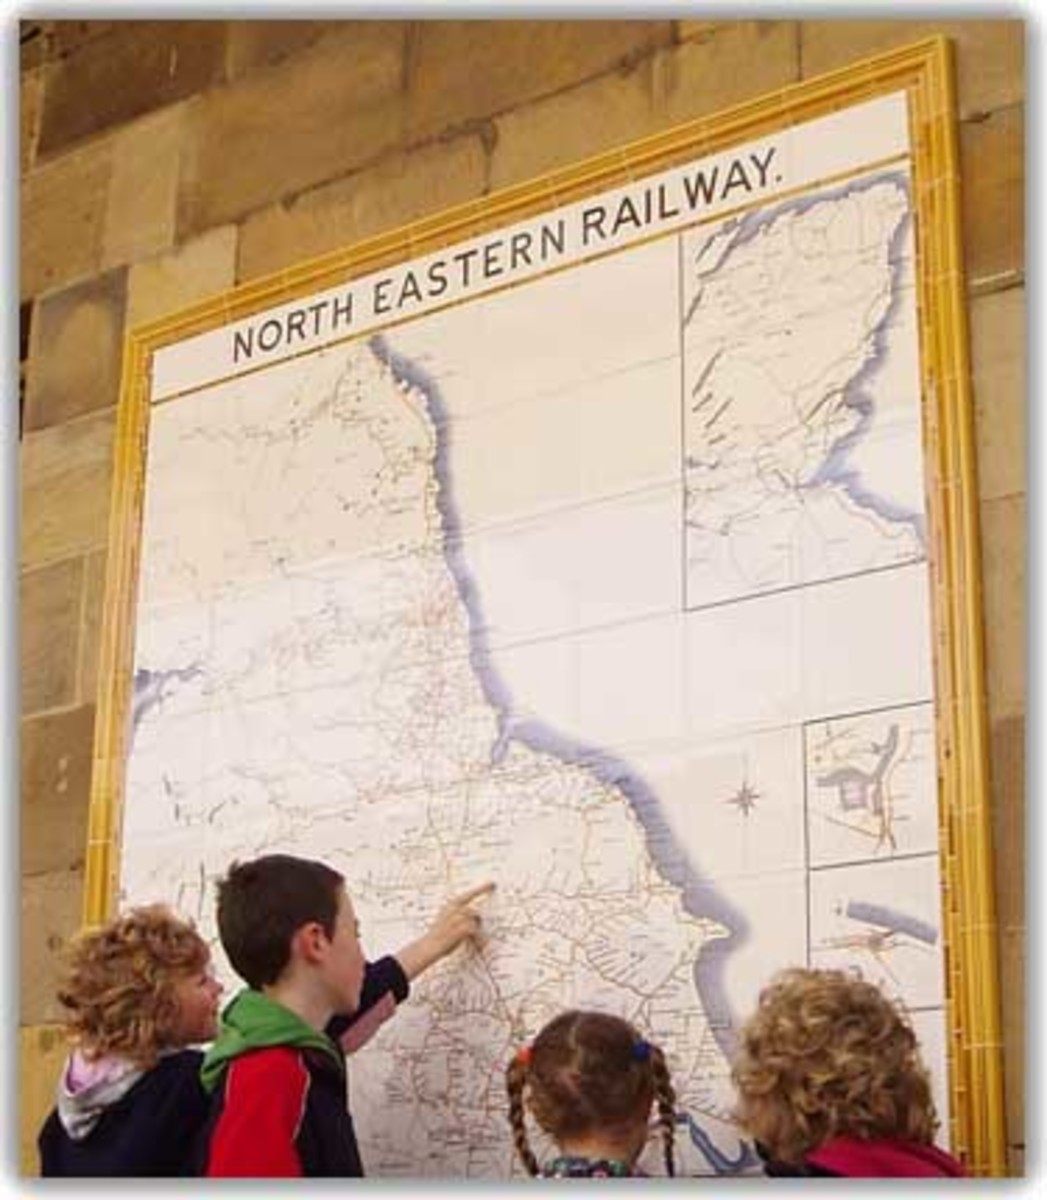 North Eastern Tile network wall map installed at Pickering 2009 is investigated by a group of children. A girl points to her own local station on the western edge of the North Yorkshire Moors (one of many closed in the 1950s and 1960s)